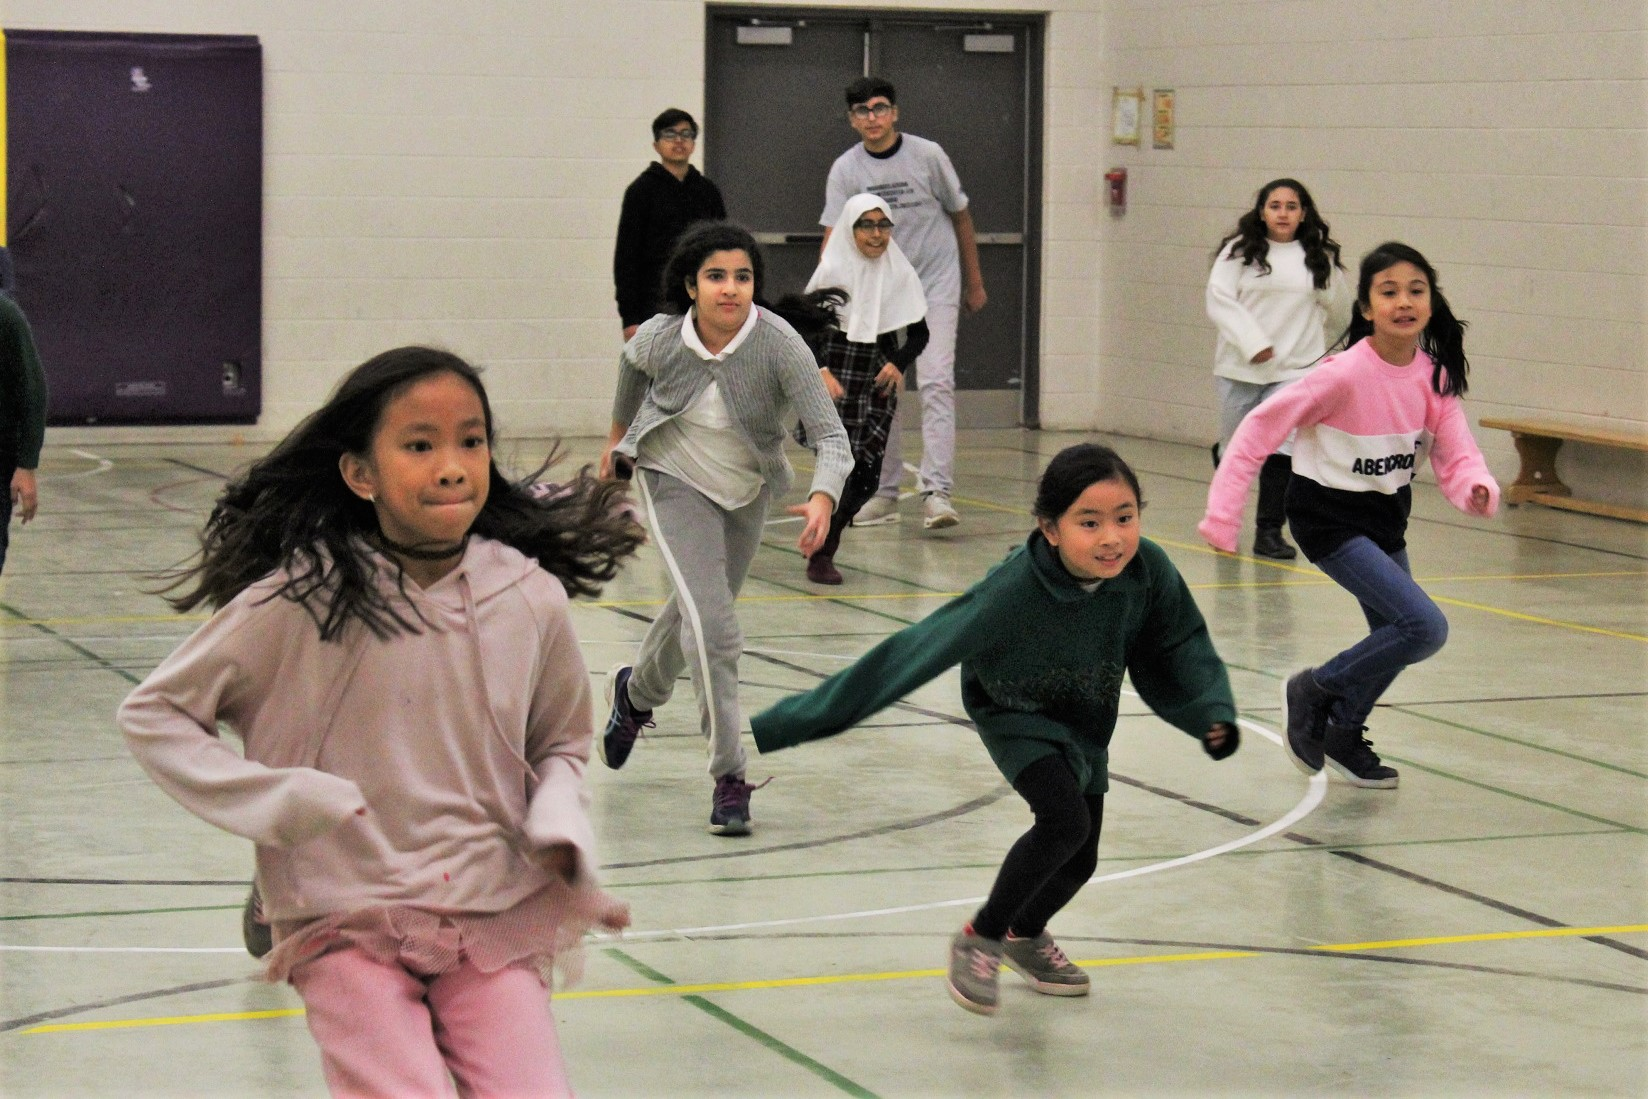 Kids stay active at indoors